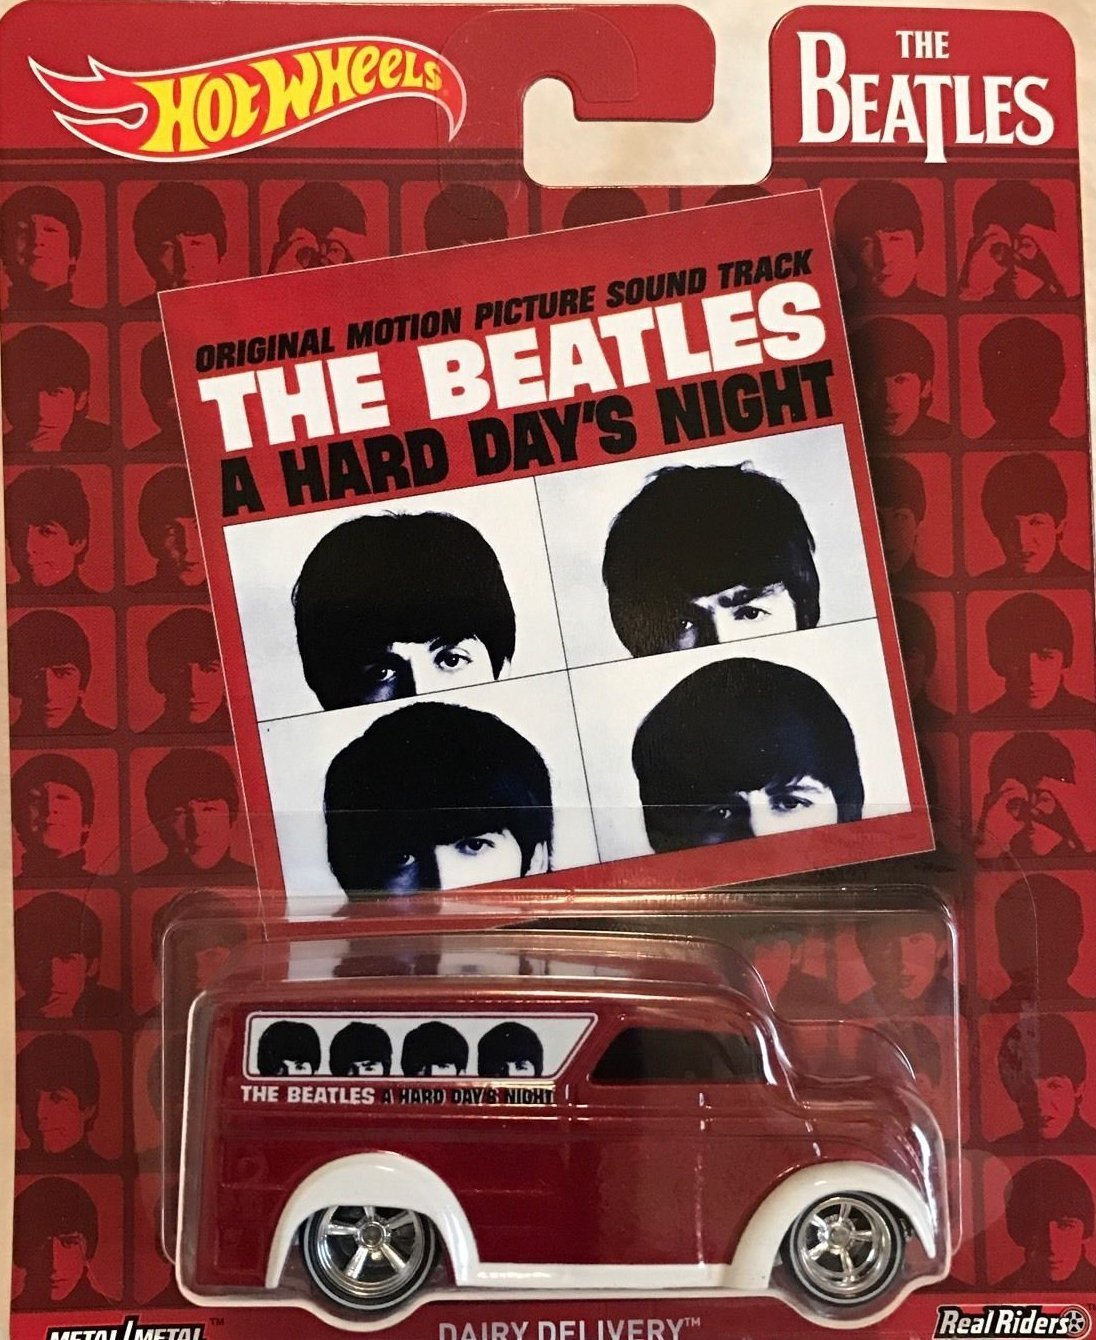 The Beatles A Hard Day's Night Hot Wheels Dairy Delivery Diecast Car Van OOP